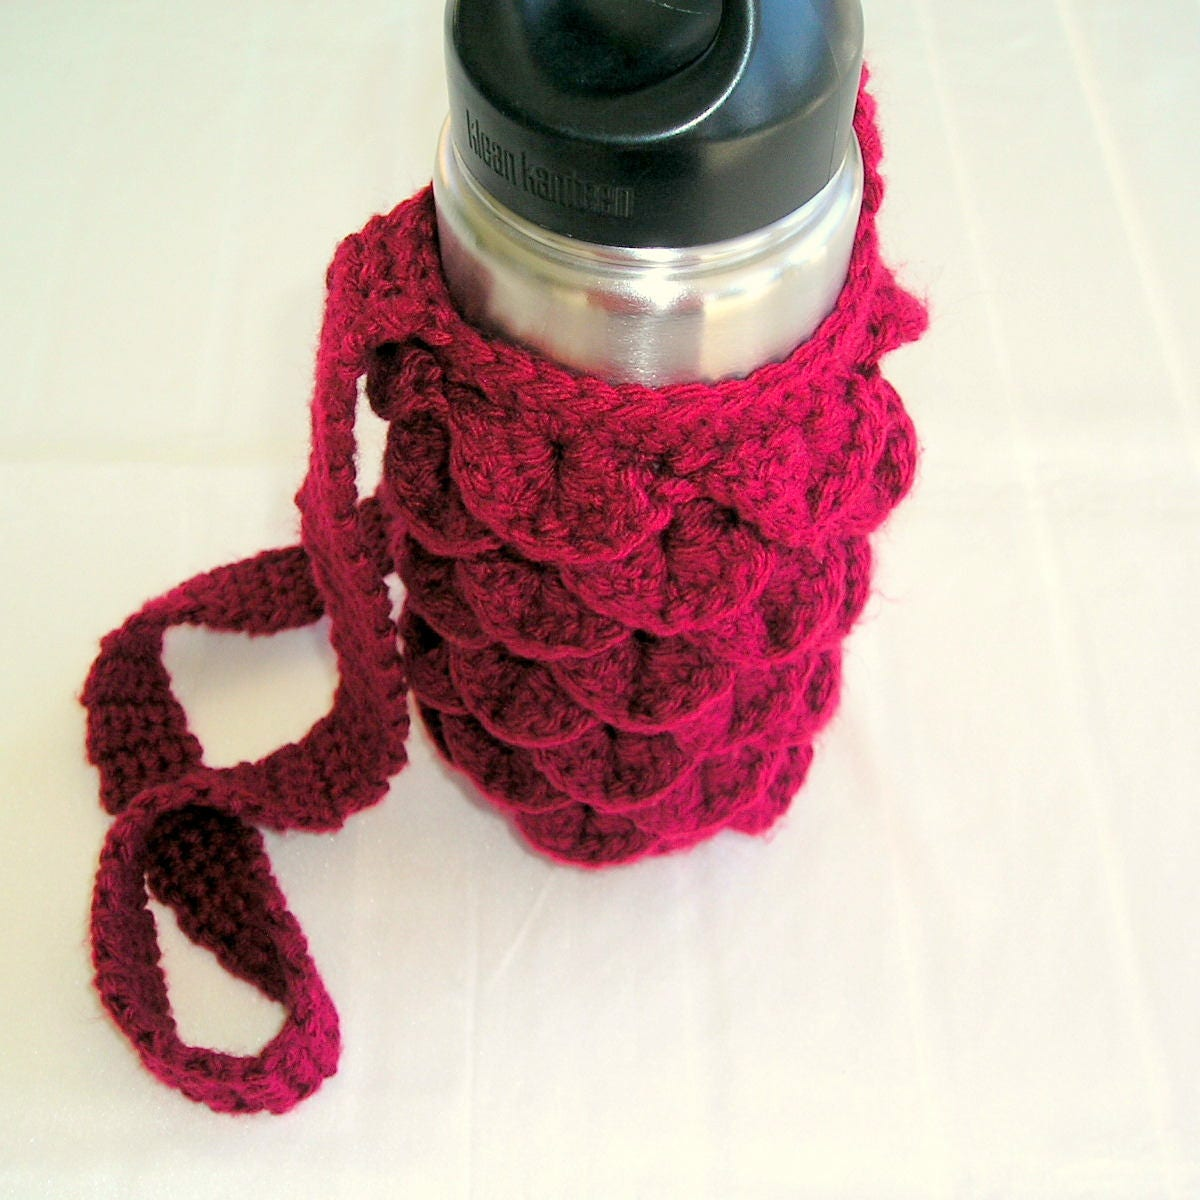 Water Bottle Cozy And To Go Cup Cozy Crochet Pdf Pattern With Etsy